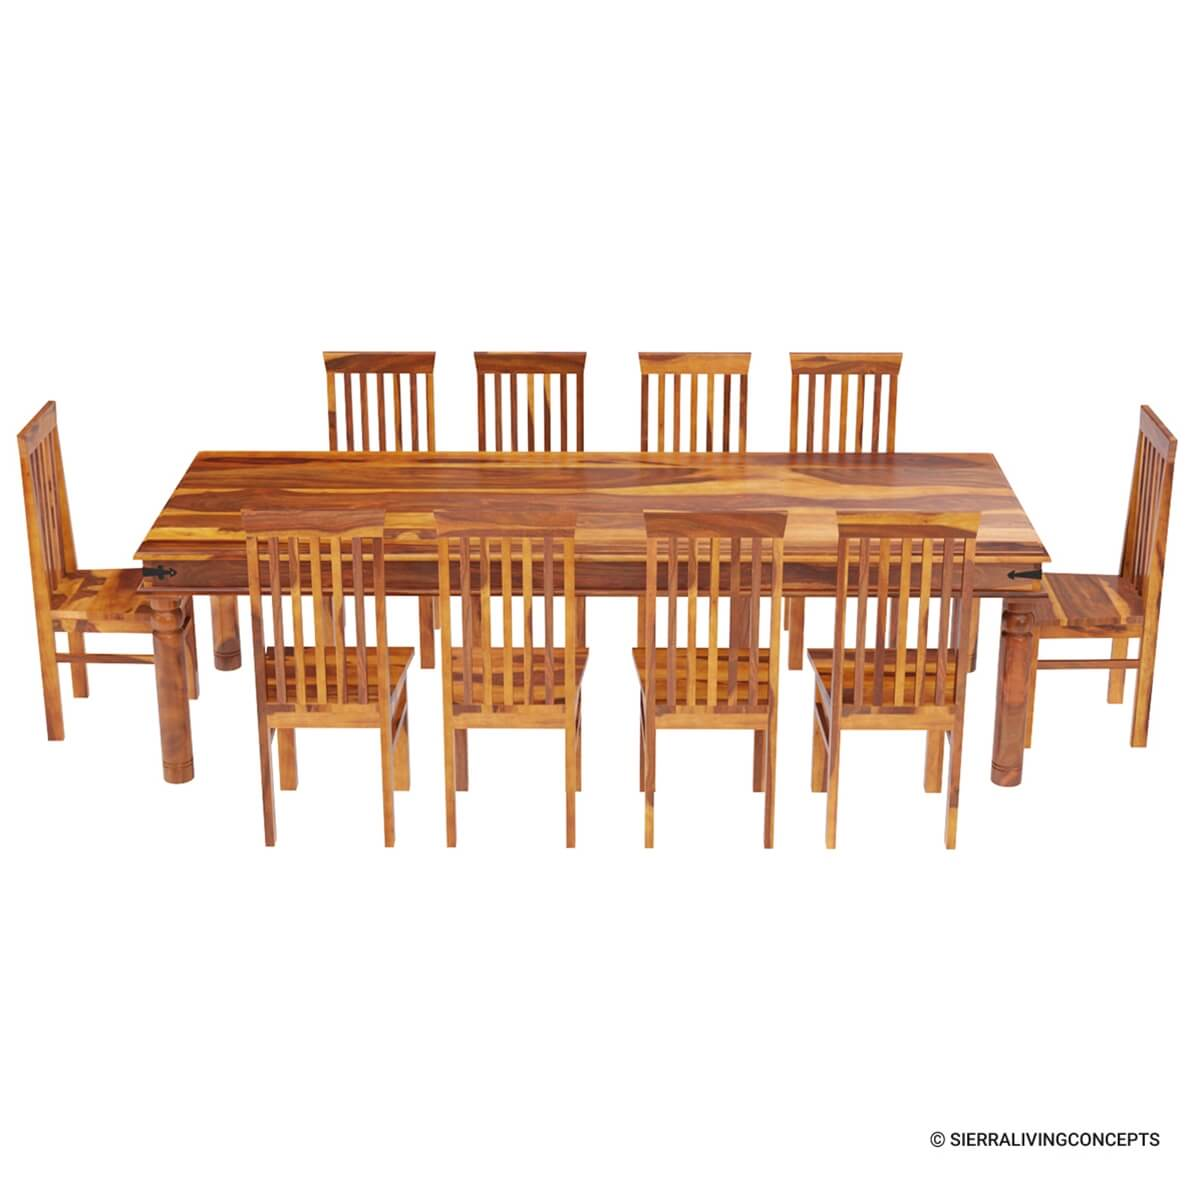 Wide Dining Room Tables: Rustic Lincoln Study Large Dining Room Table Chair Set For